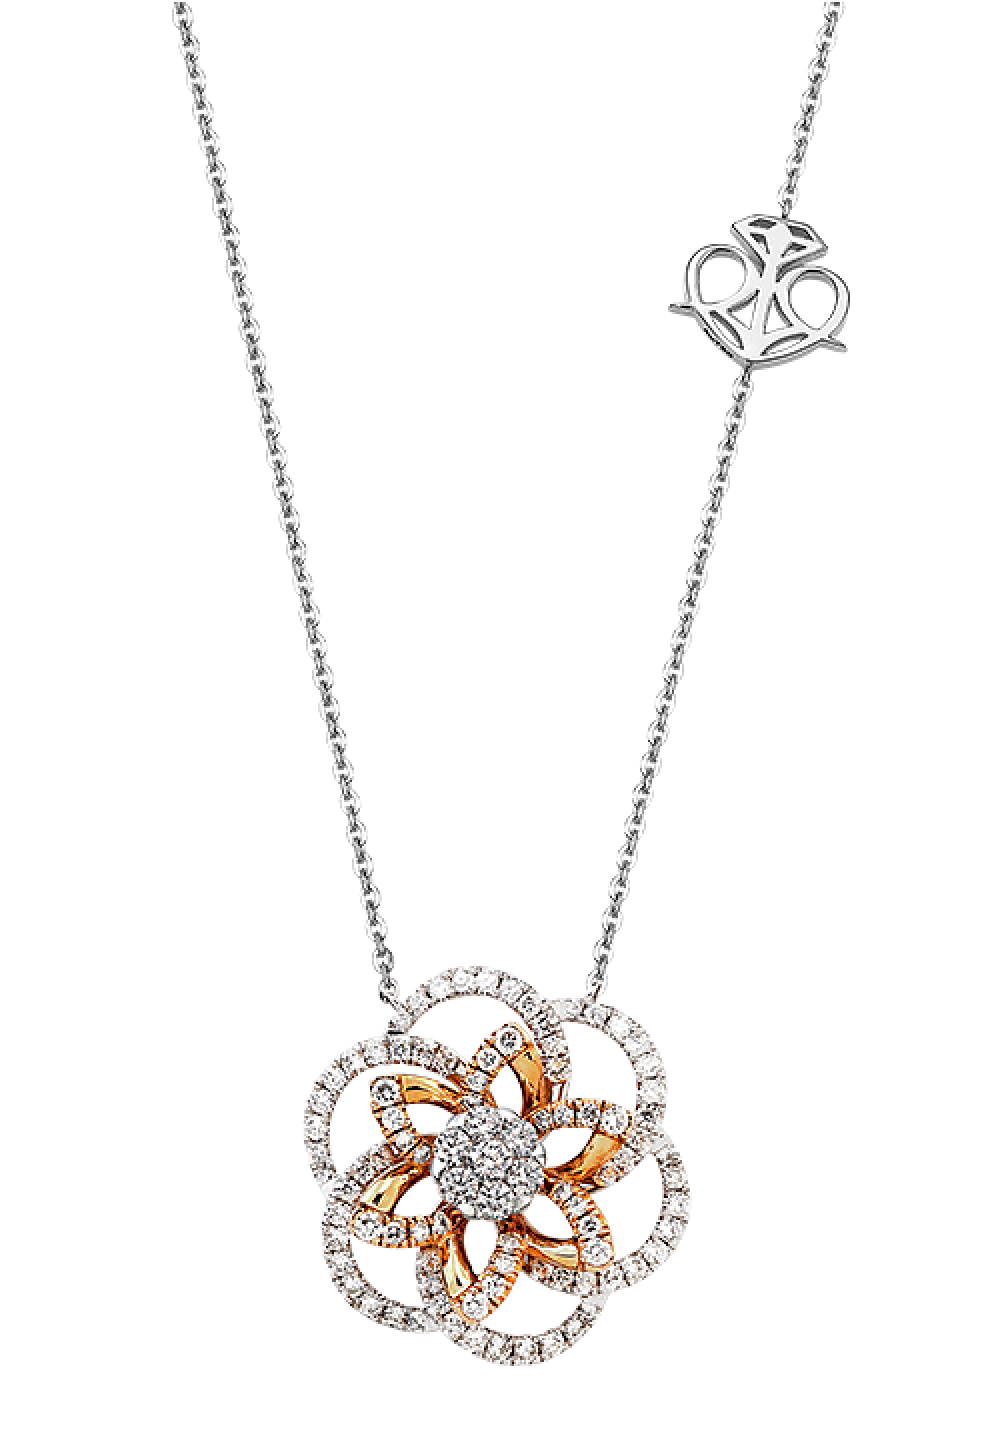 18K Rose Gold Sophisticated Spinning Floral Coronet Diamond Necklace